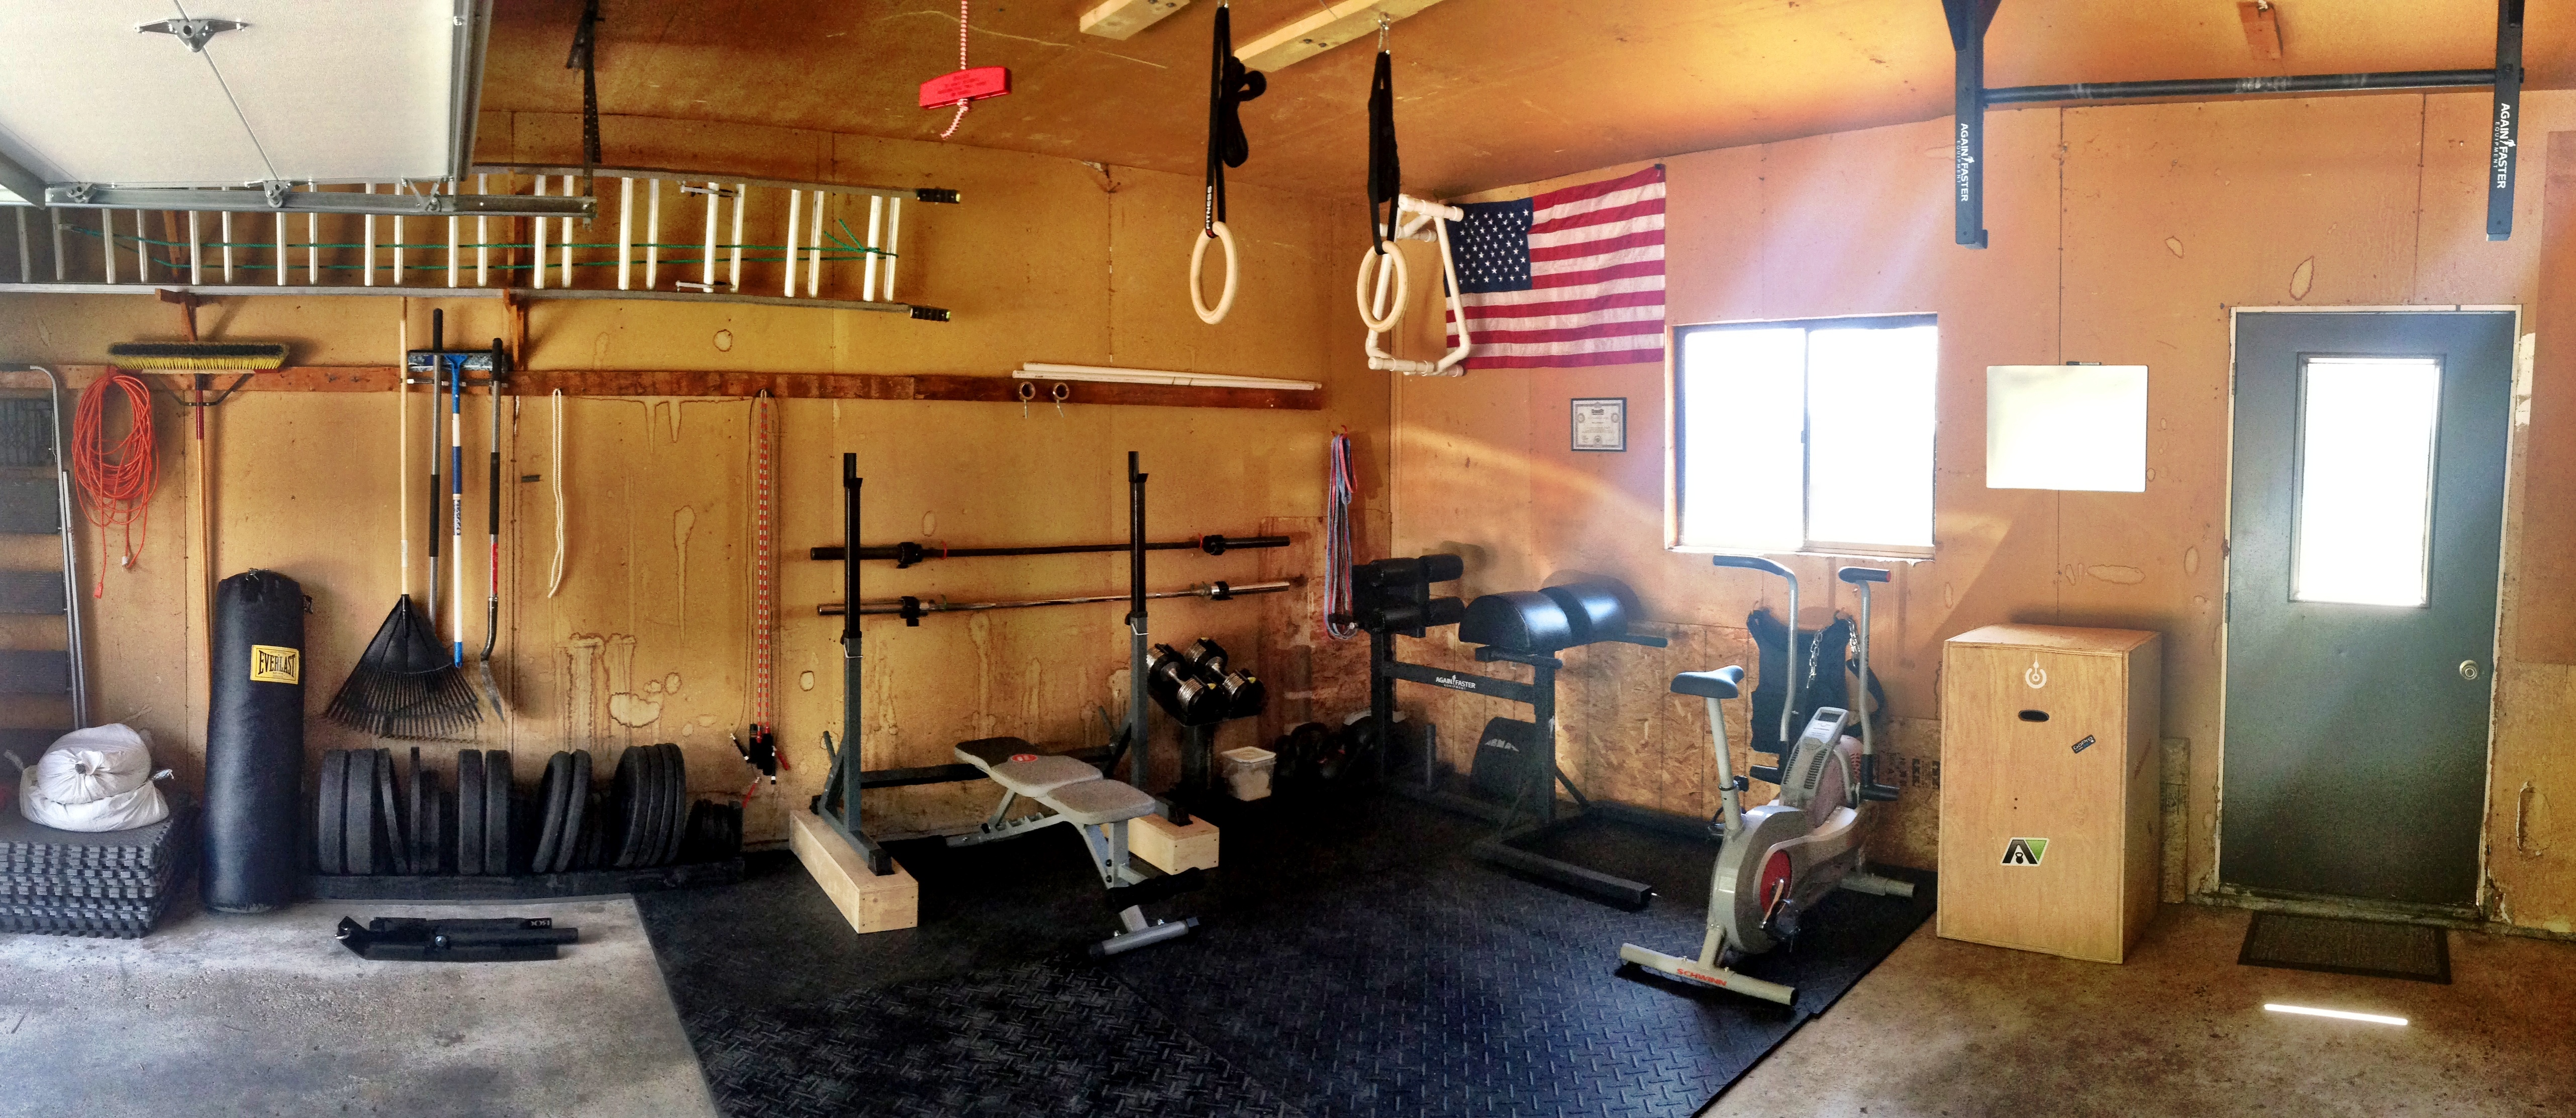 Should you convert your garage into a room